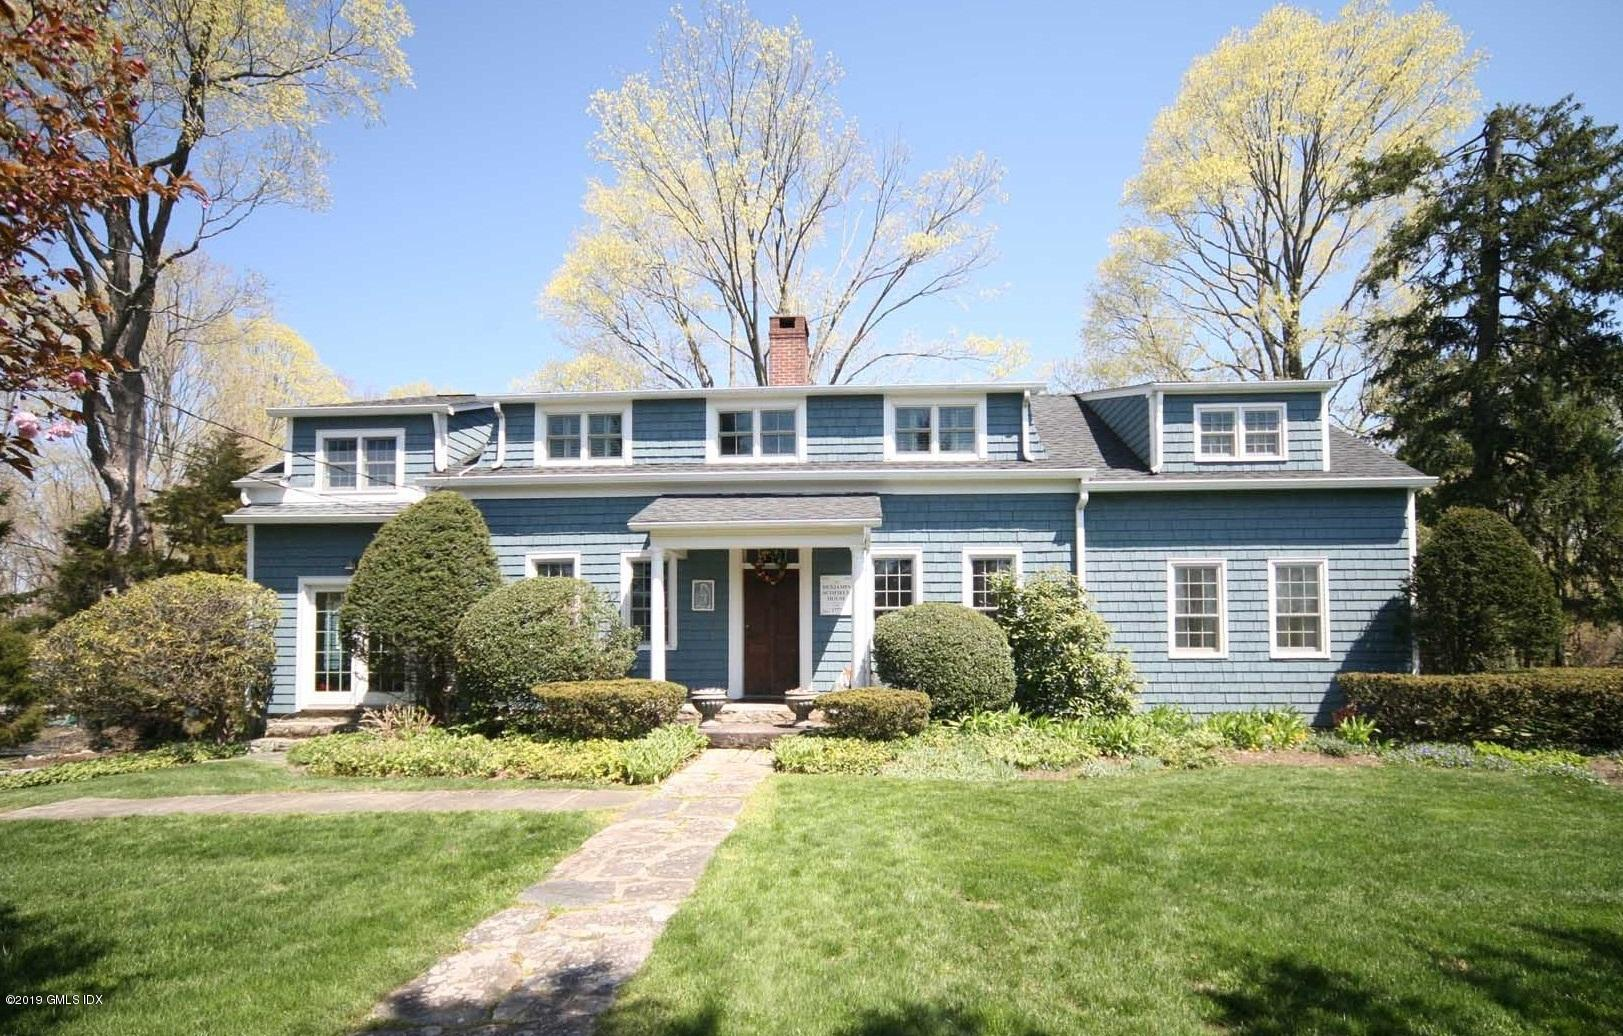 1569 Newfield Avenue, Stamford, CT 06905